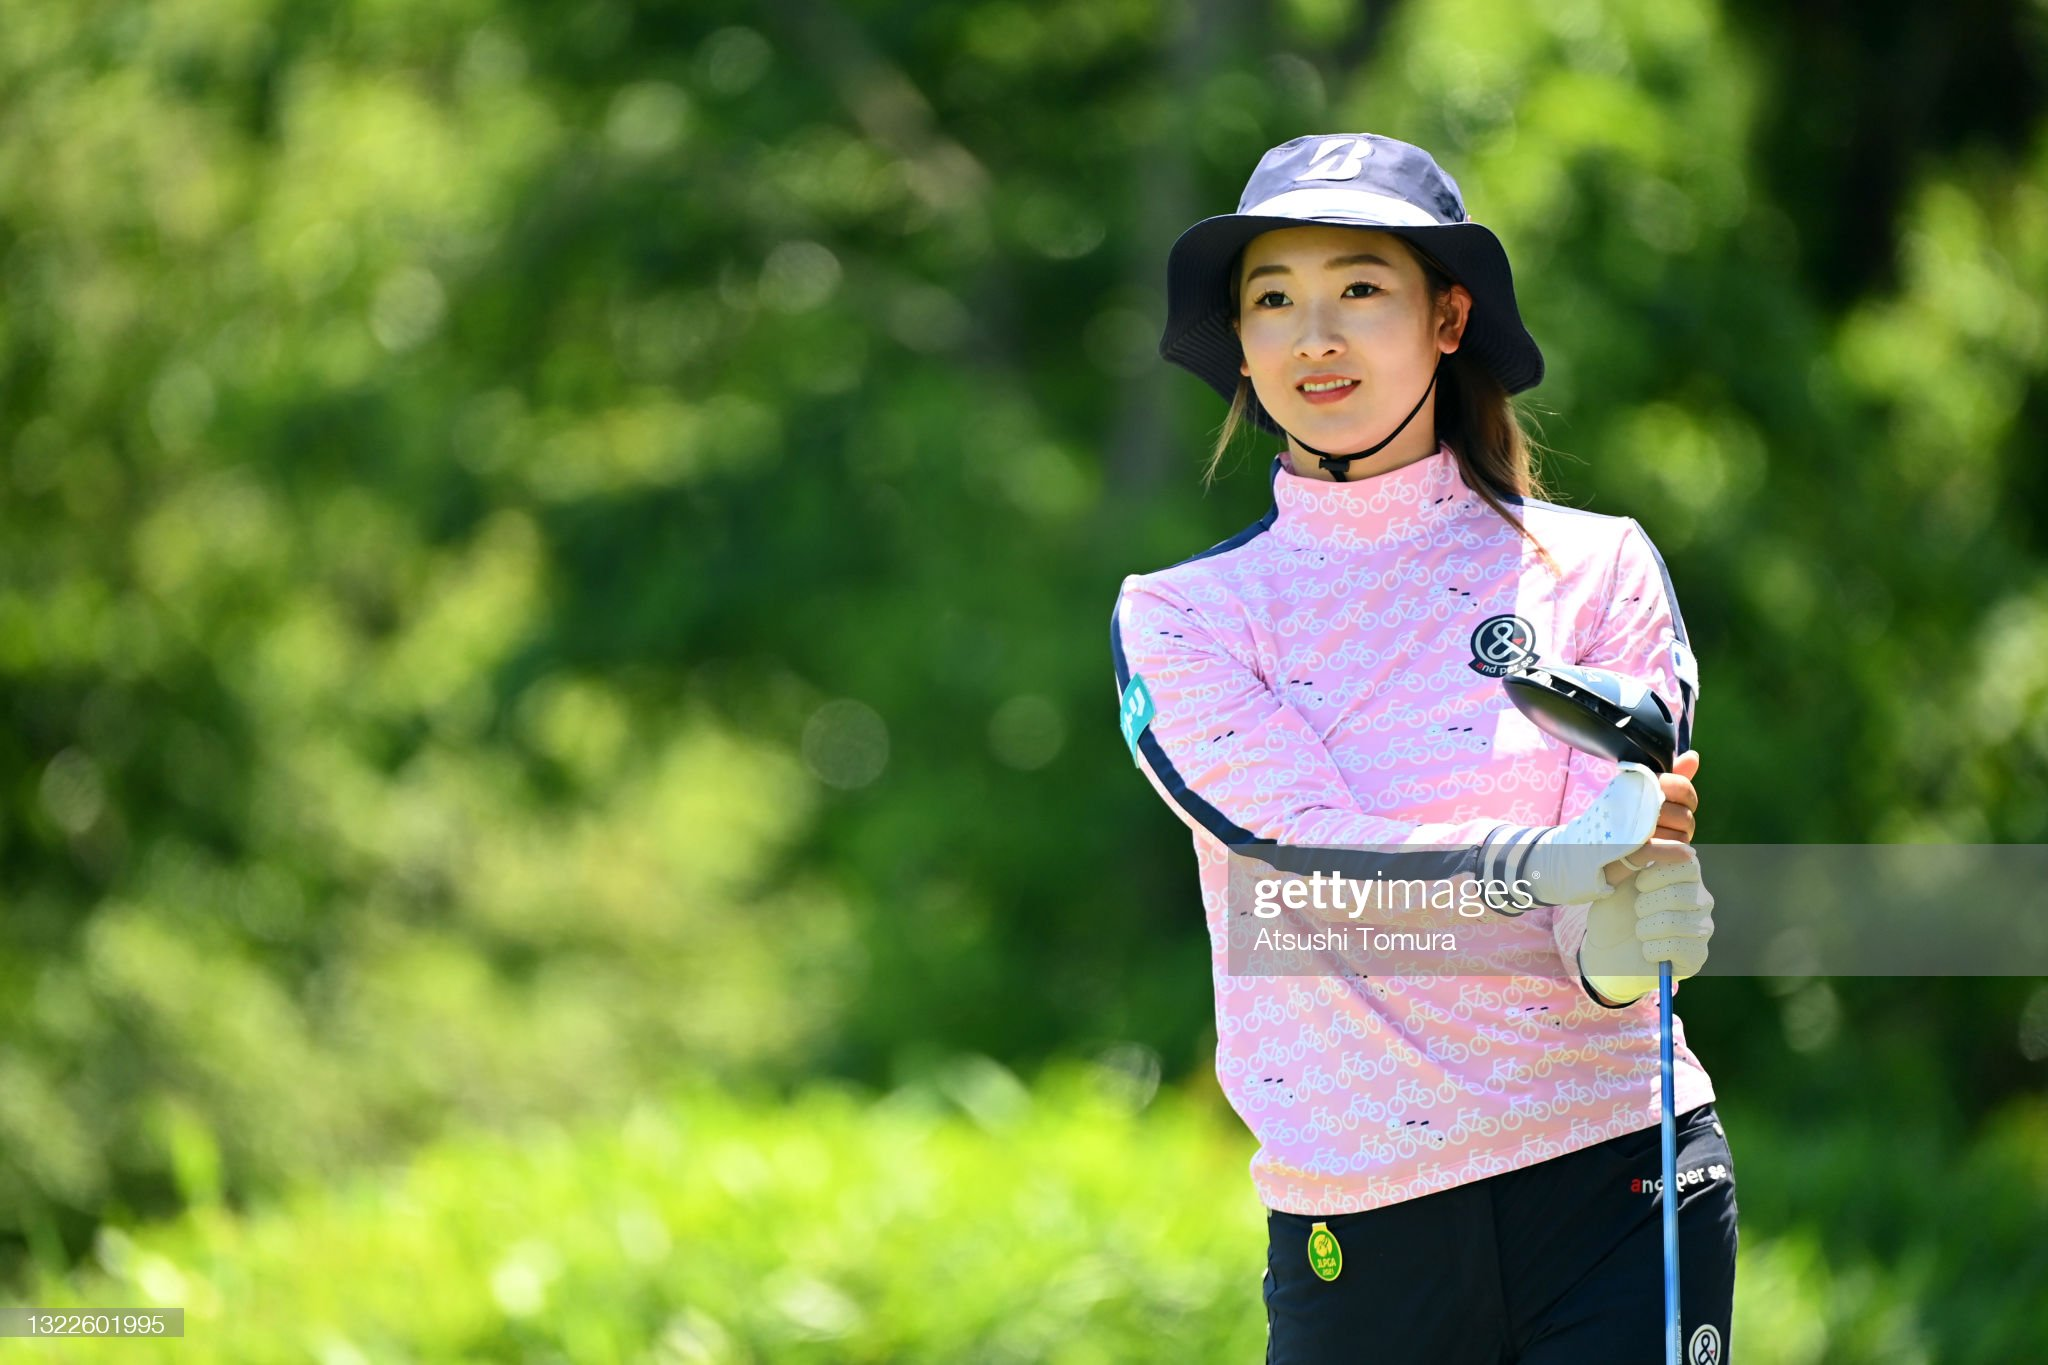 https://media.gettyimages.com/photos/rei-matsuda-of-japan-hits-her-tee-shot-on-the-14th-hole-during-the-picture-id1322601995?s=2048x2048